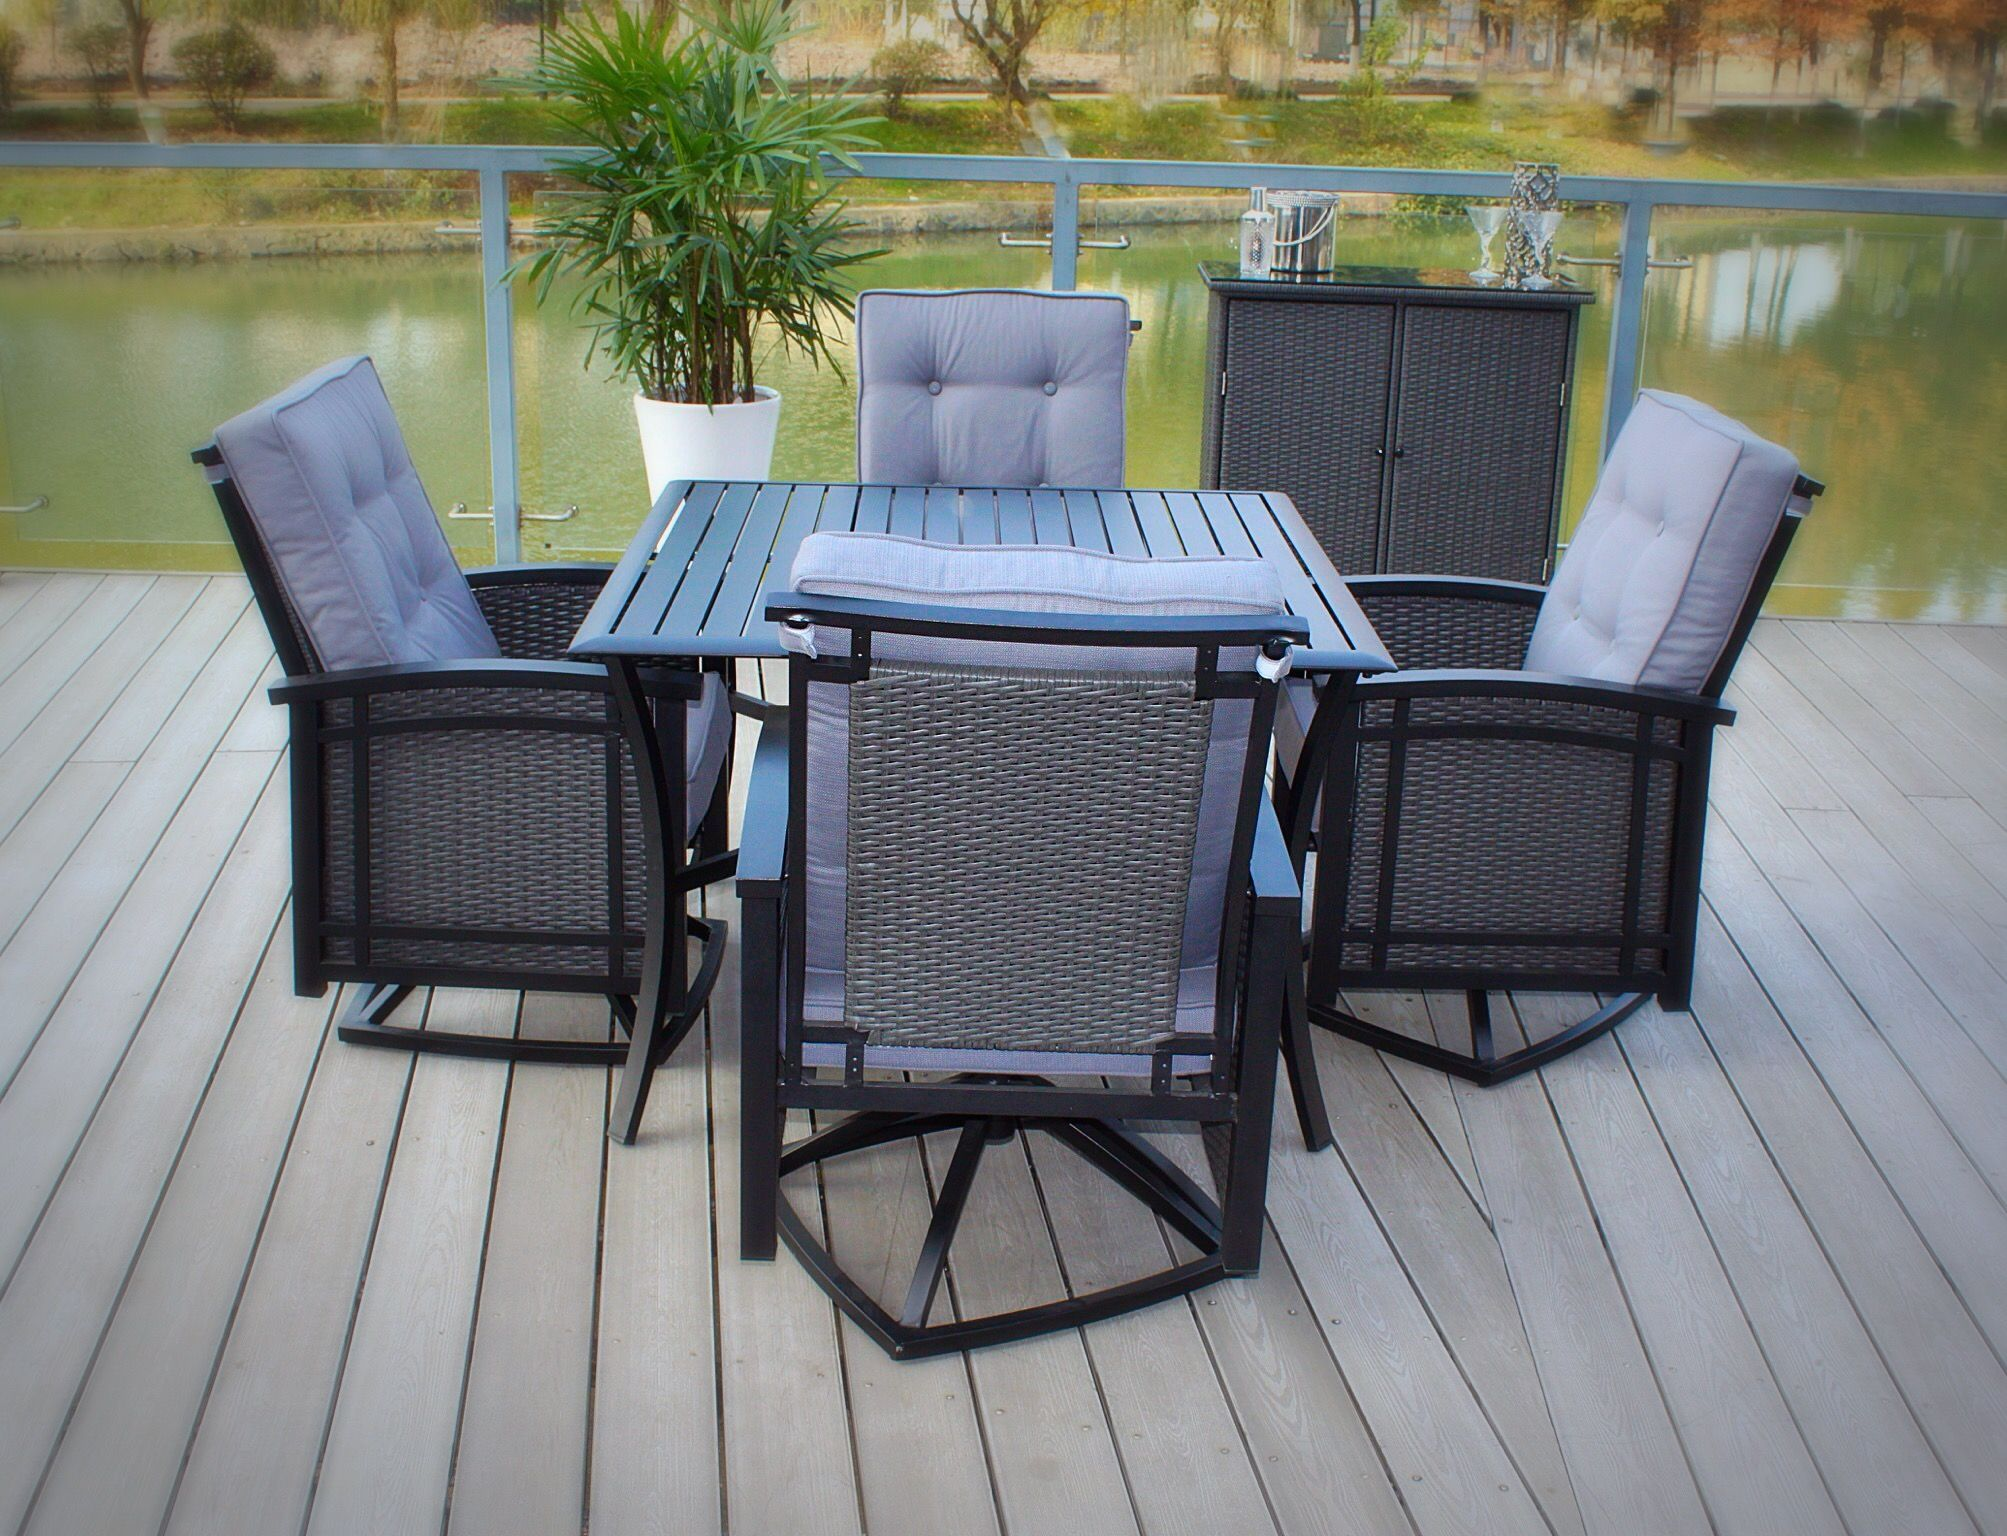 5pc palmetto aluminum wicker patio dining set with square slat